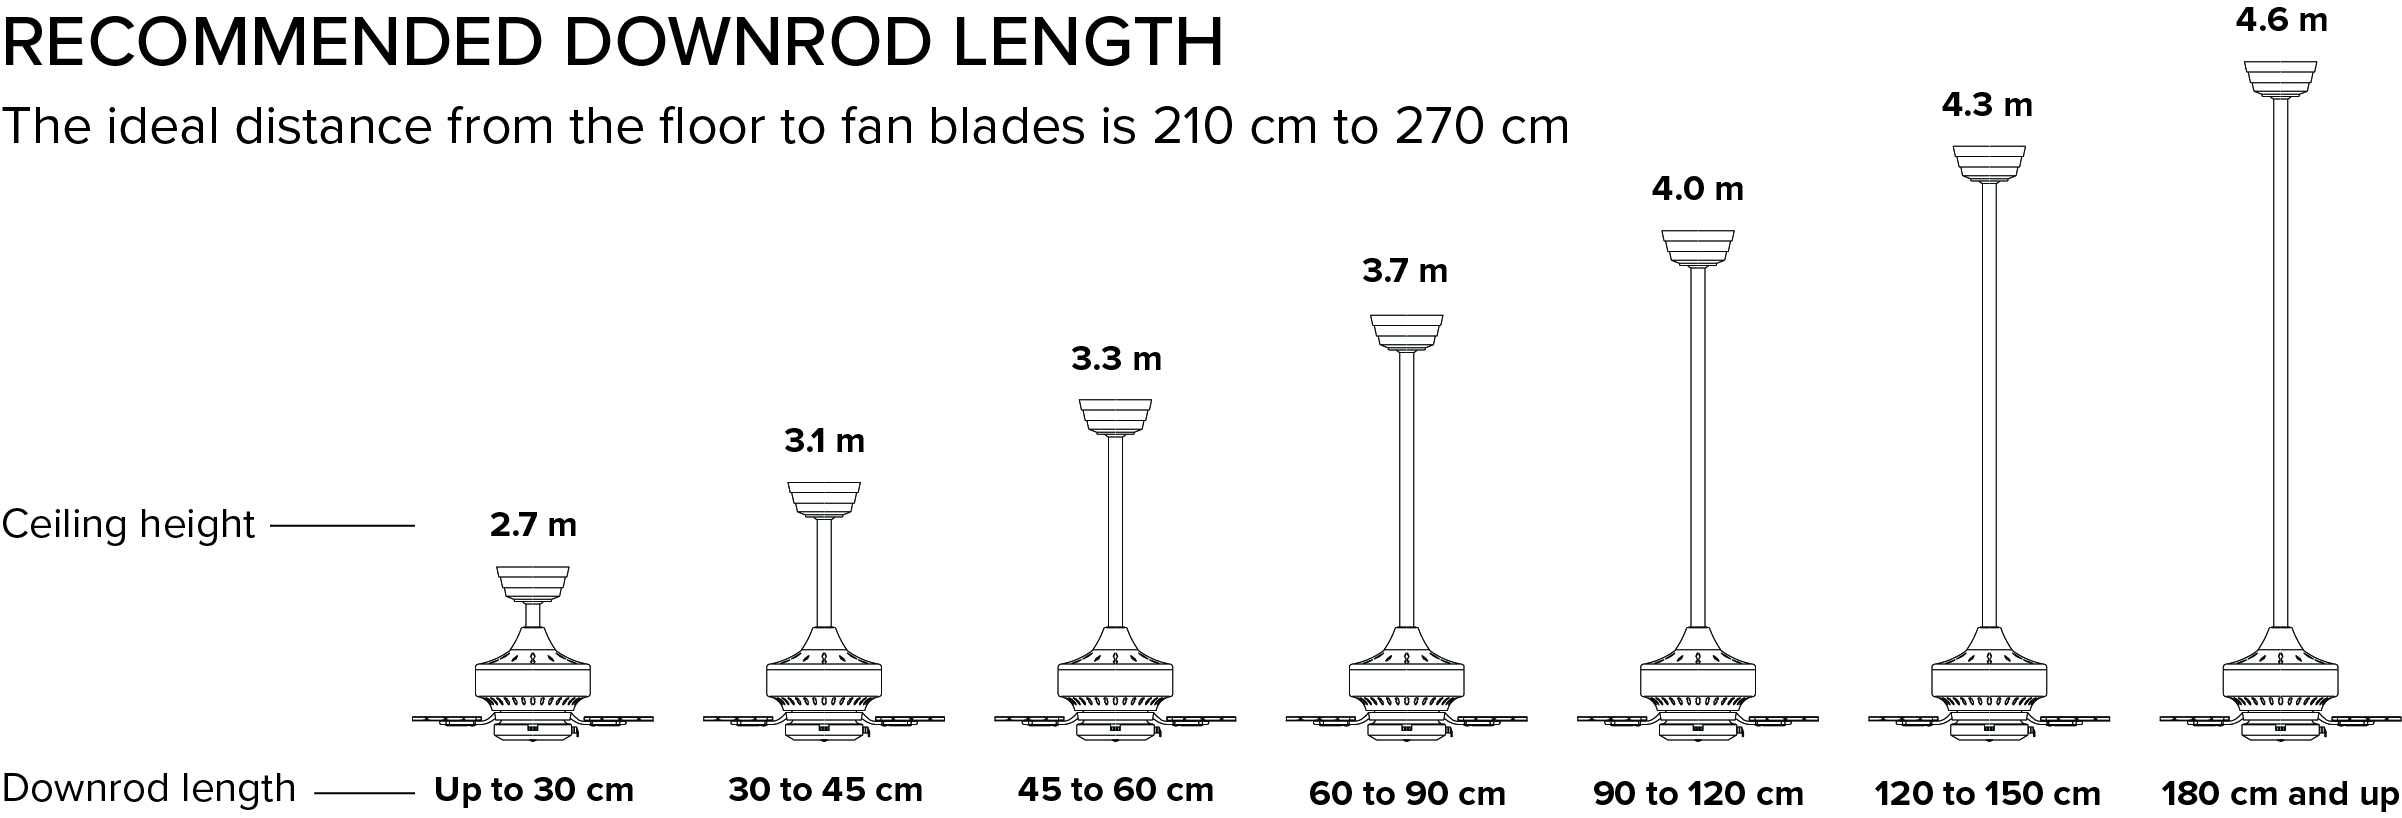 Downrod Length Based on Ceiling Height Guide